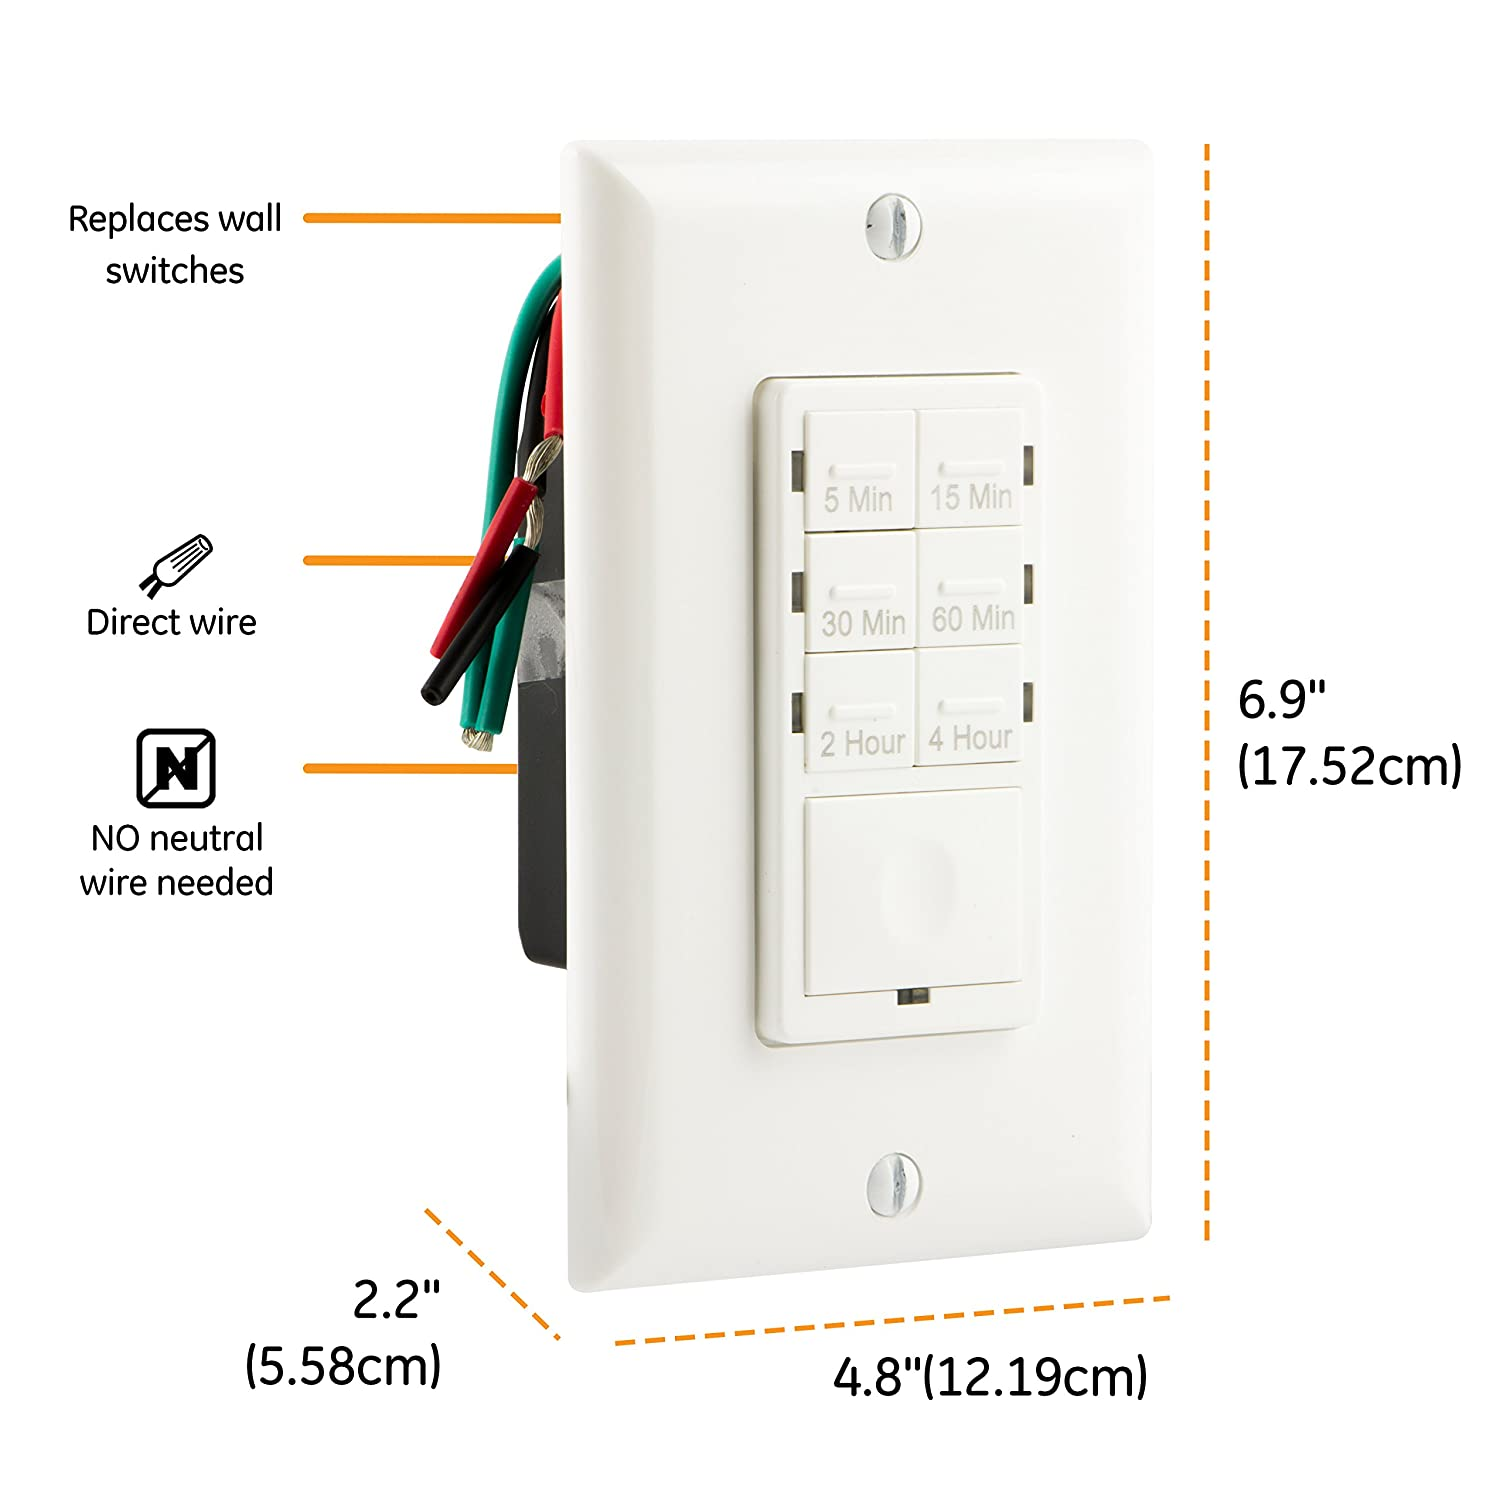 Ge Push Button In Wall Digital Countdown Timer Switch 5 15 30 Light And Exhaust Fan Wiring Diagram For 1 Powering Minute 2 4 Hour Presets On Off No Neutral Wire Required Lights Fans